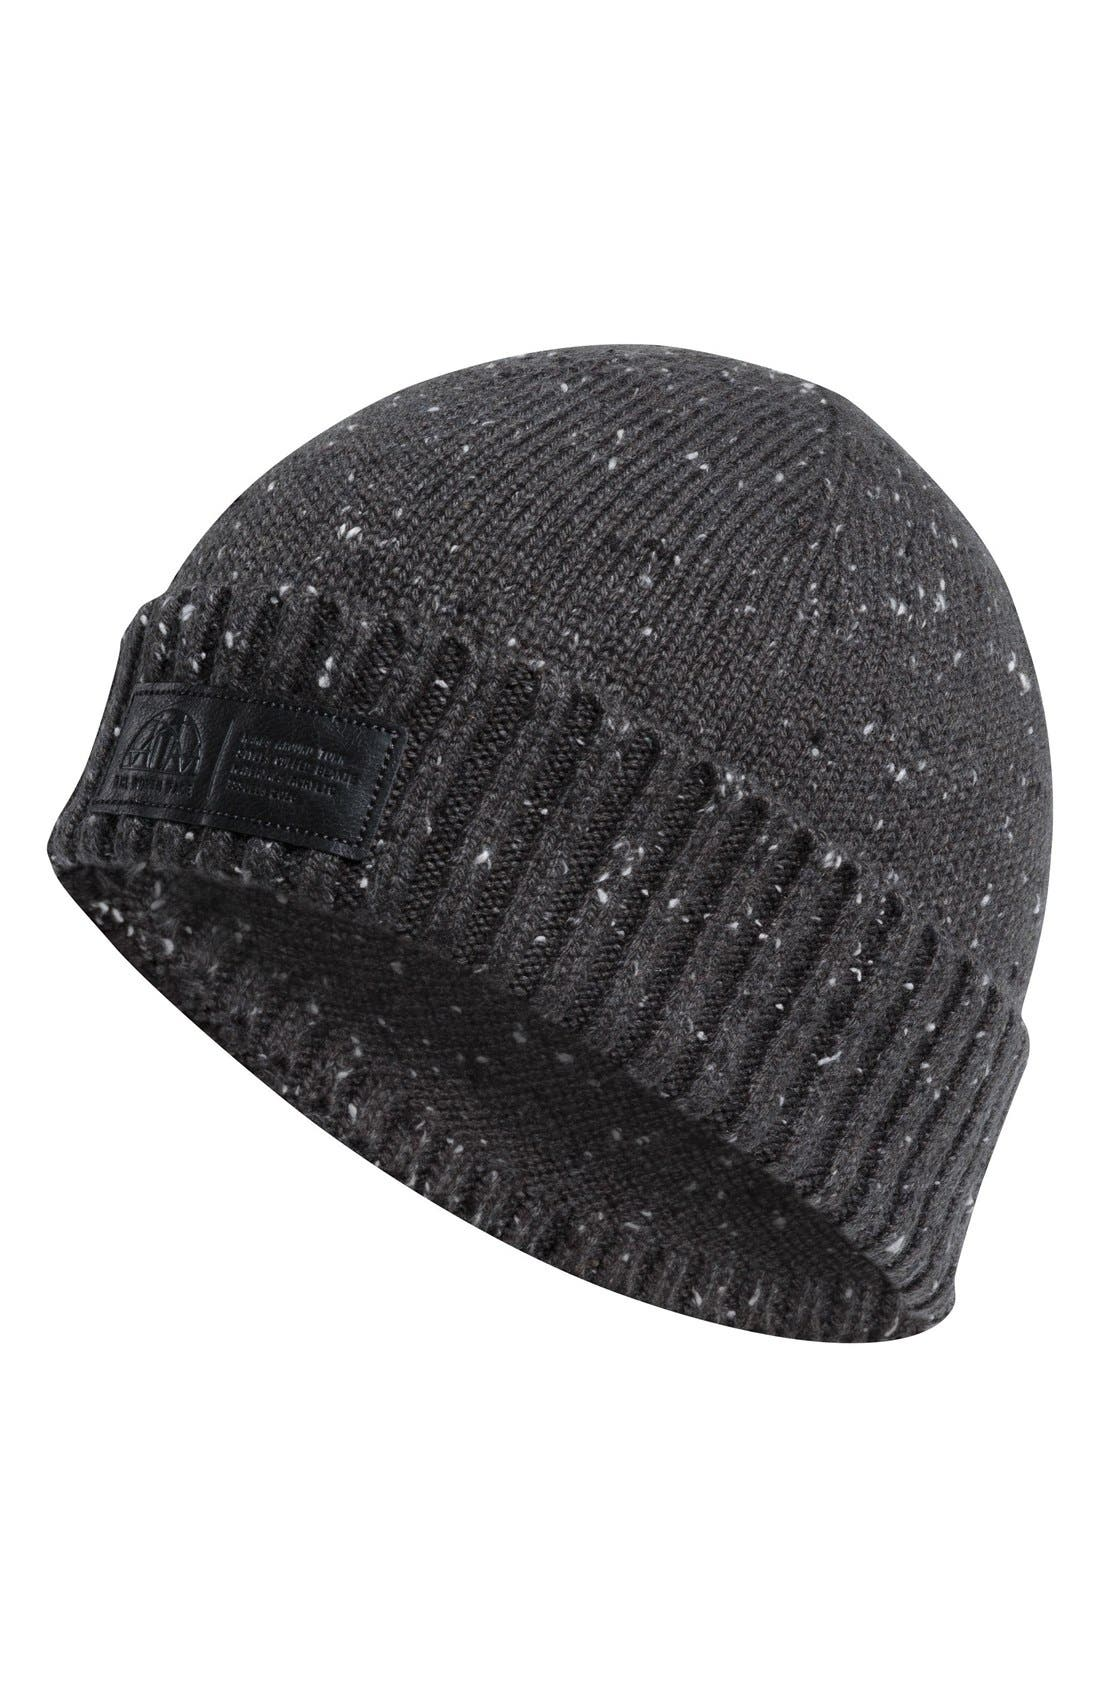 Around Town Beanie,                             Main thumbnail 1, color,                             Asphalt Grey